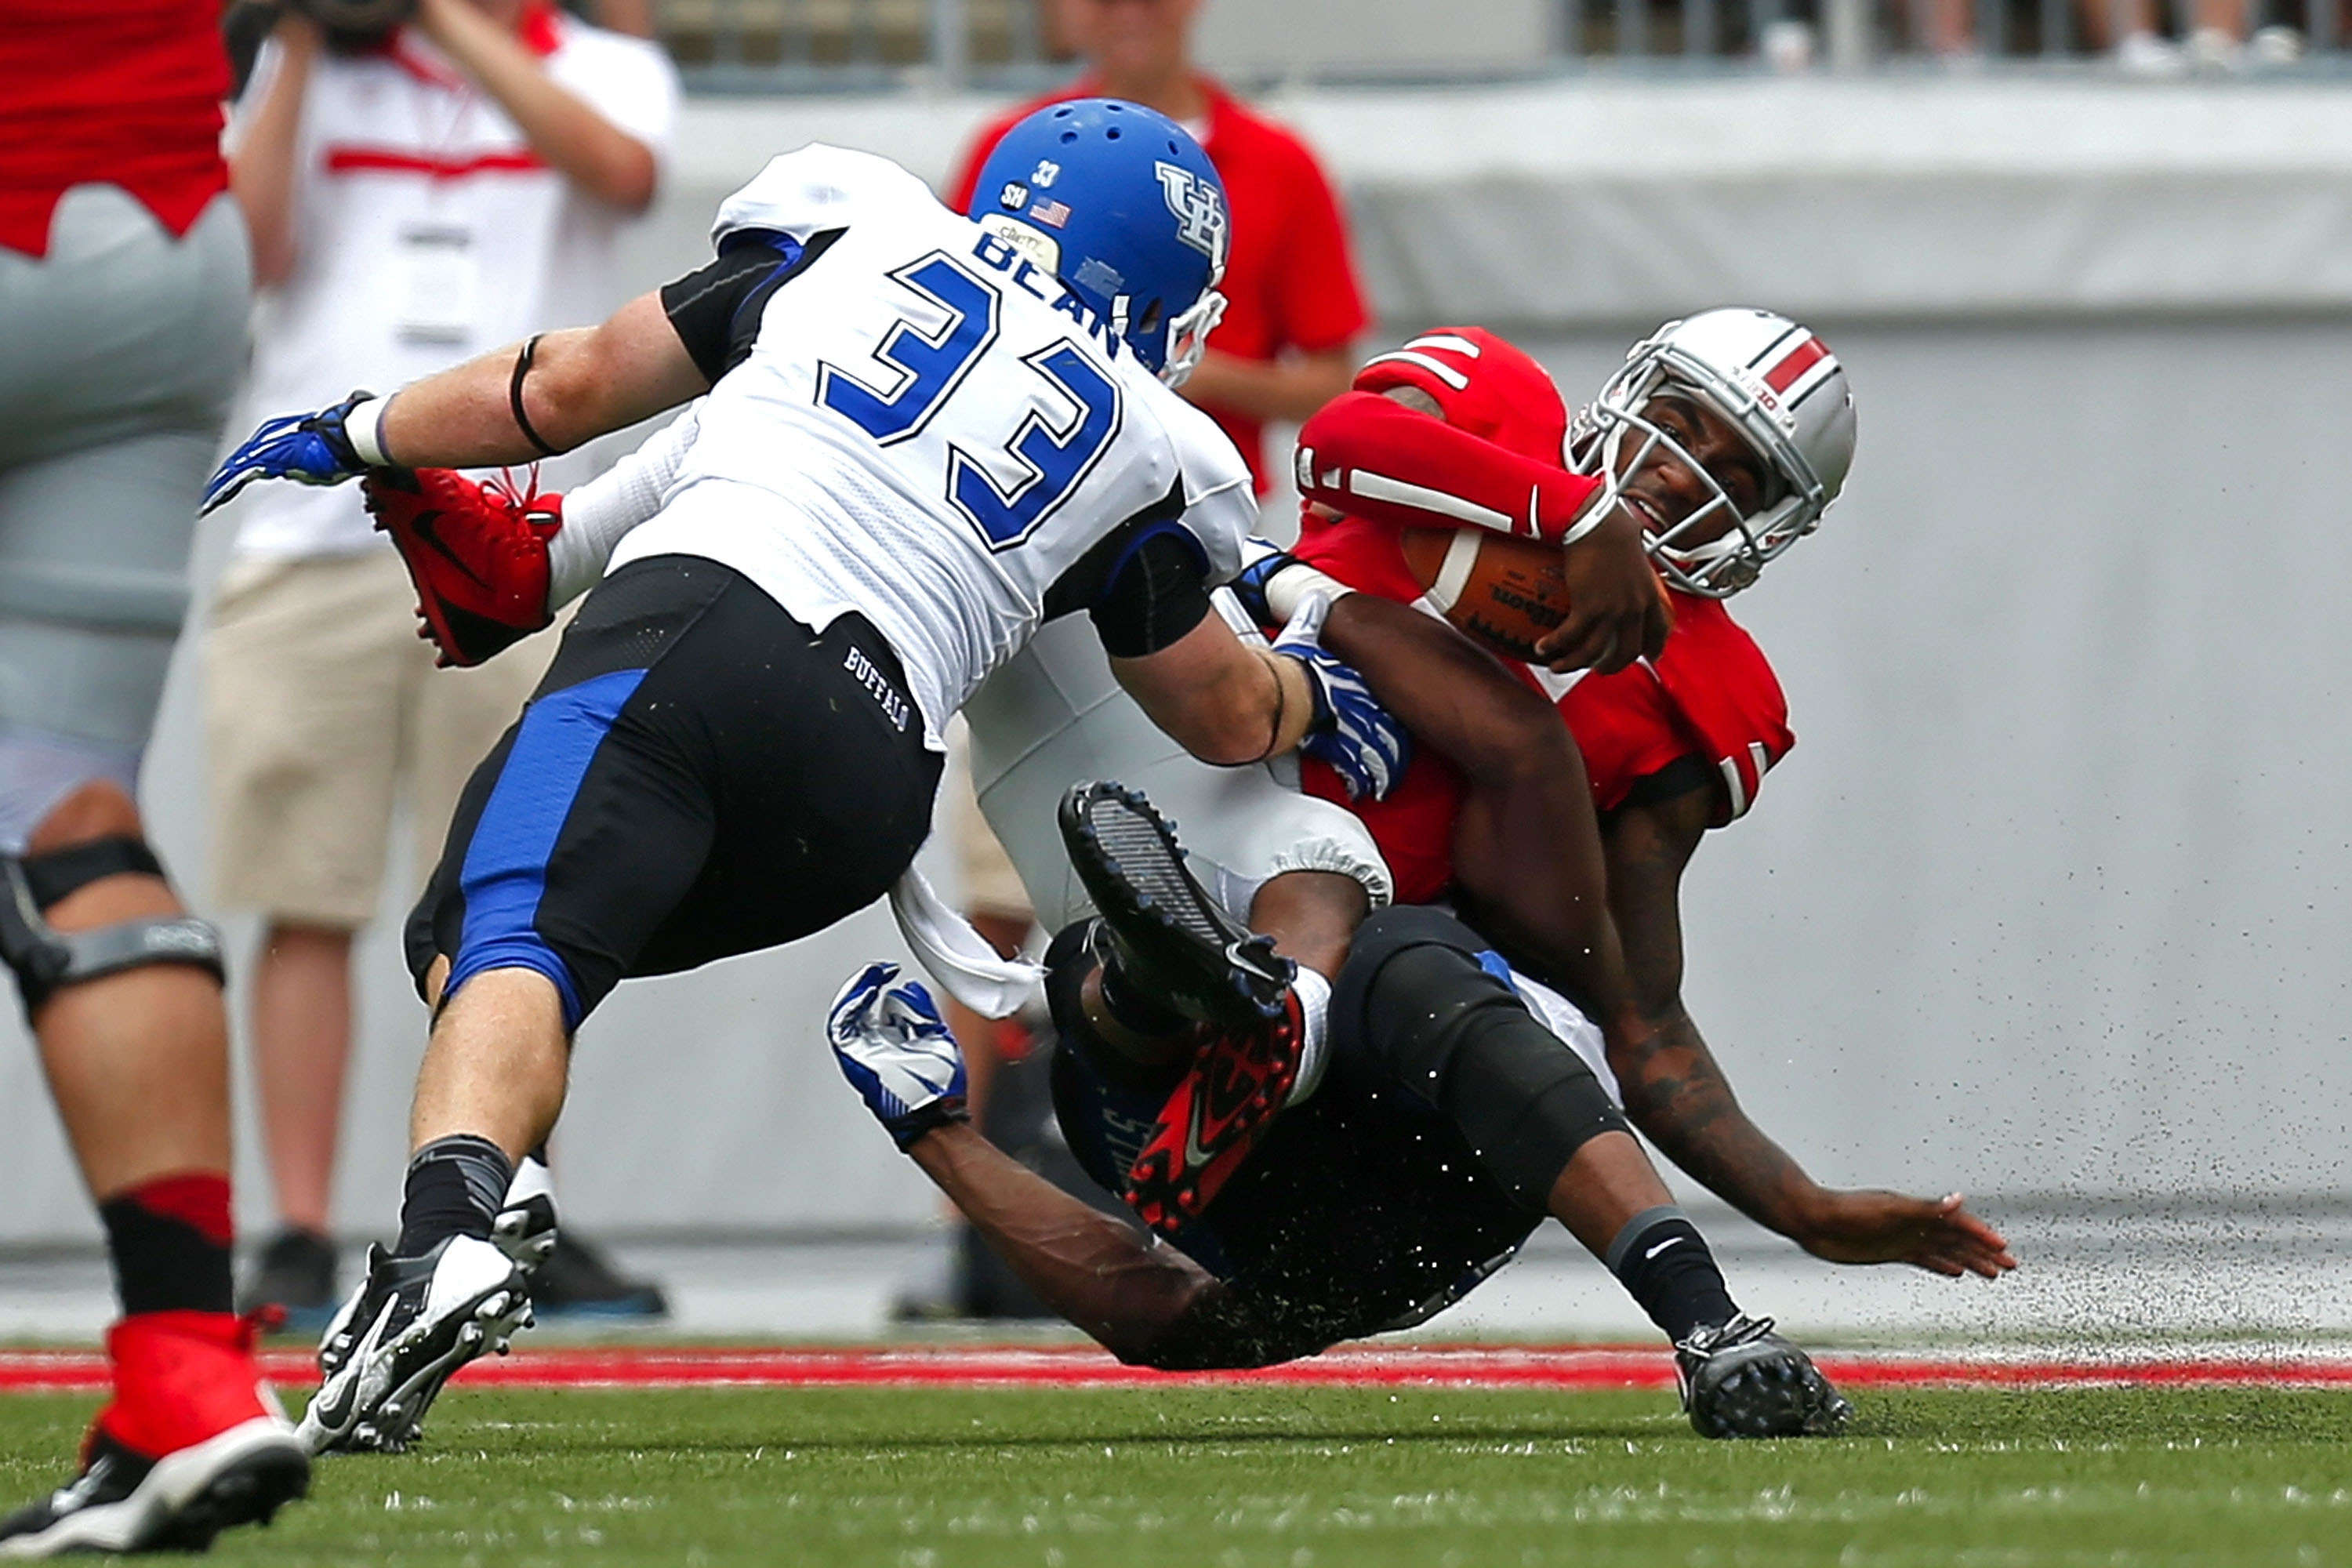 Braxton Miller (5) of Ohio State is sacked by UB's Khalil Mack (46) and Blake Bean (53) during Saturday's game in Columbus.